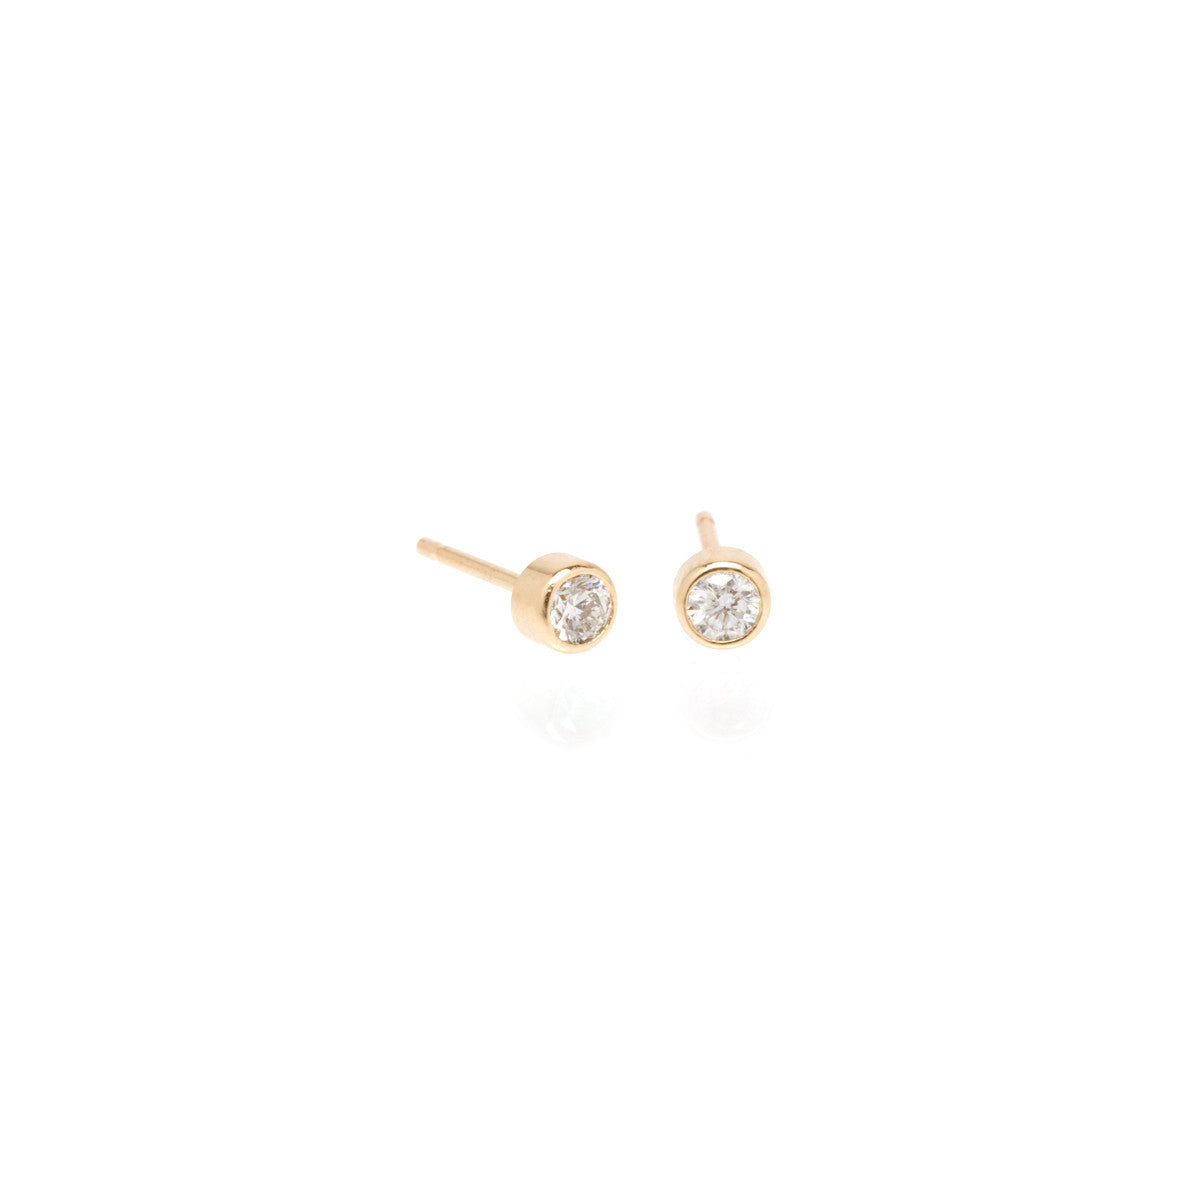 Zoë Chicco 14kt Yellow Gold Large Diamond Stud Earrings